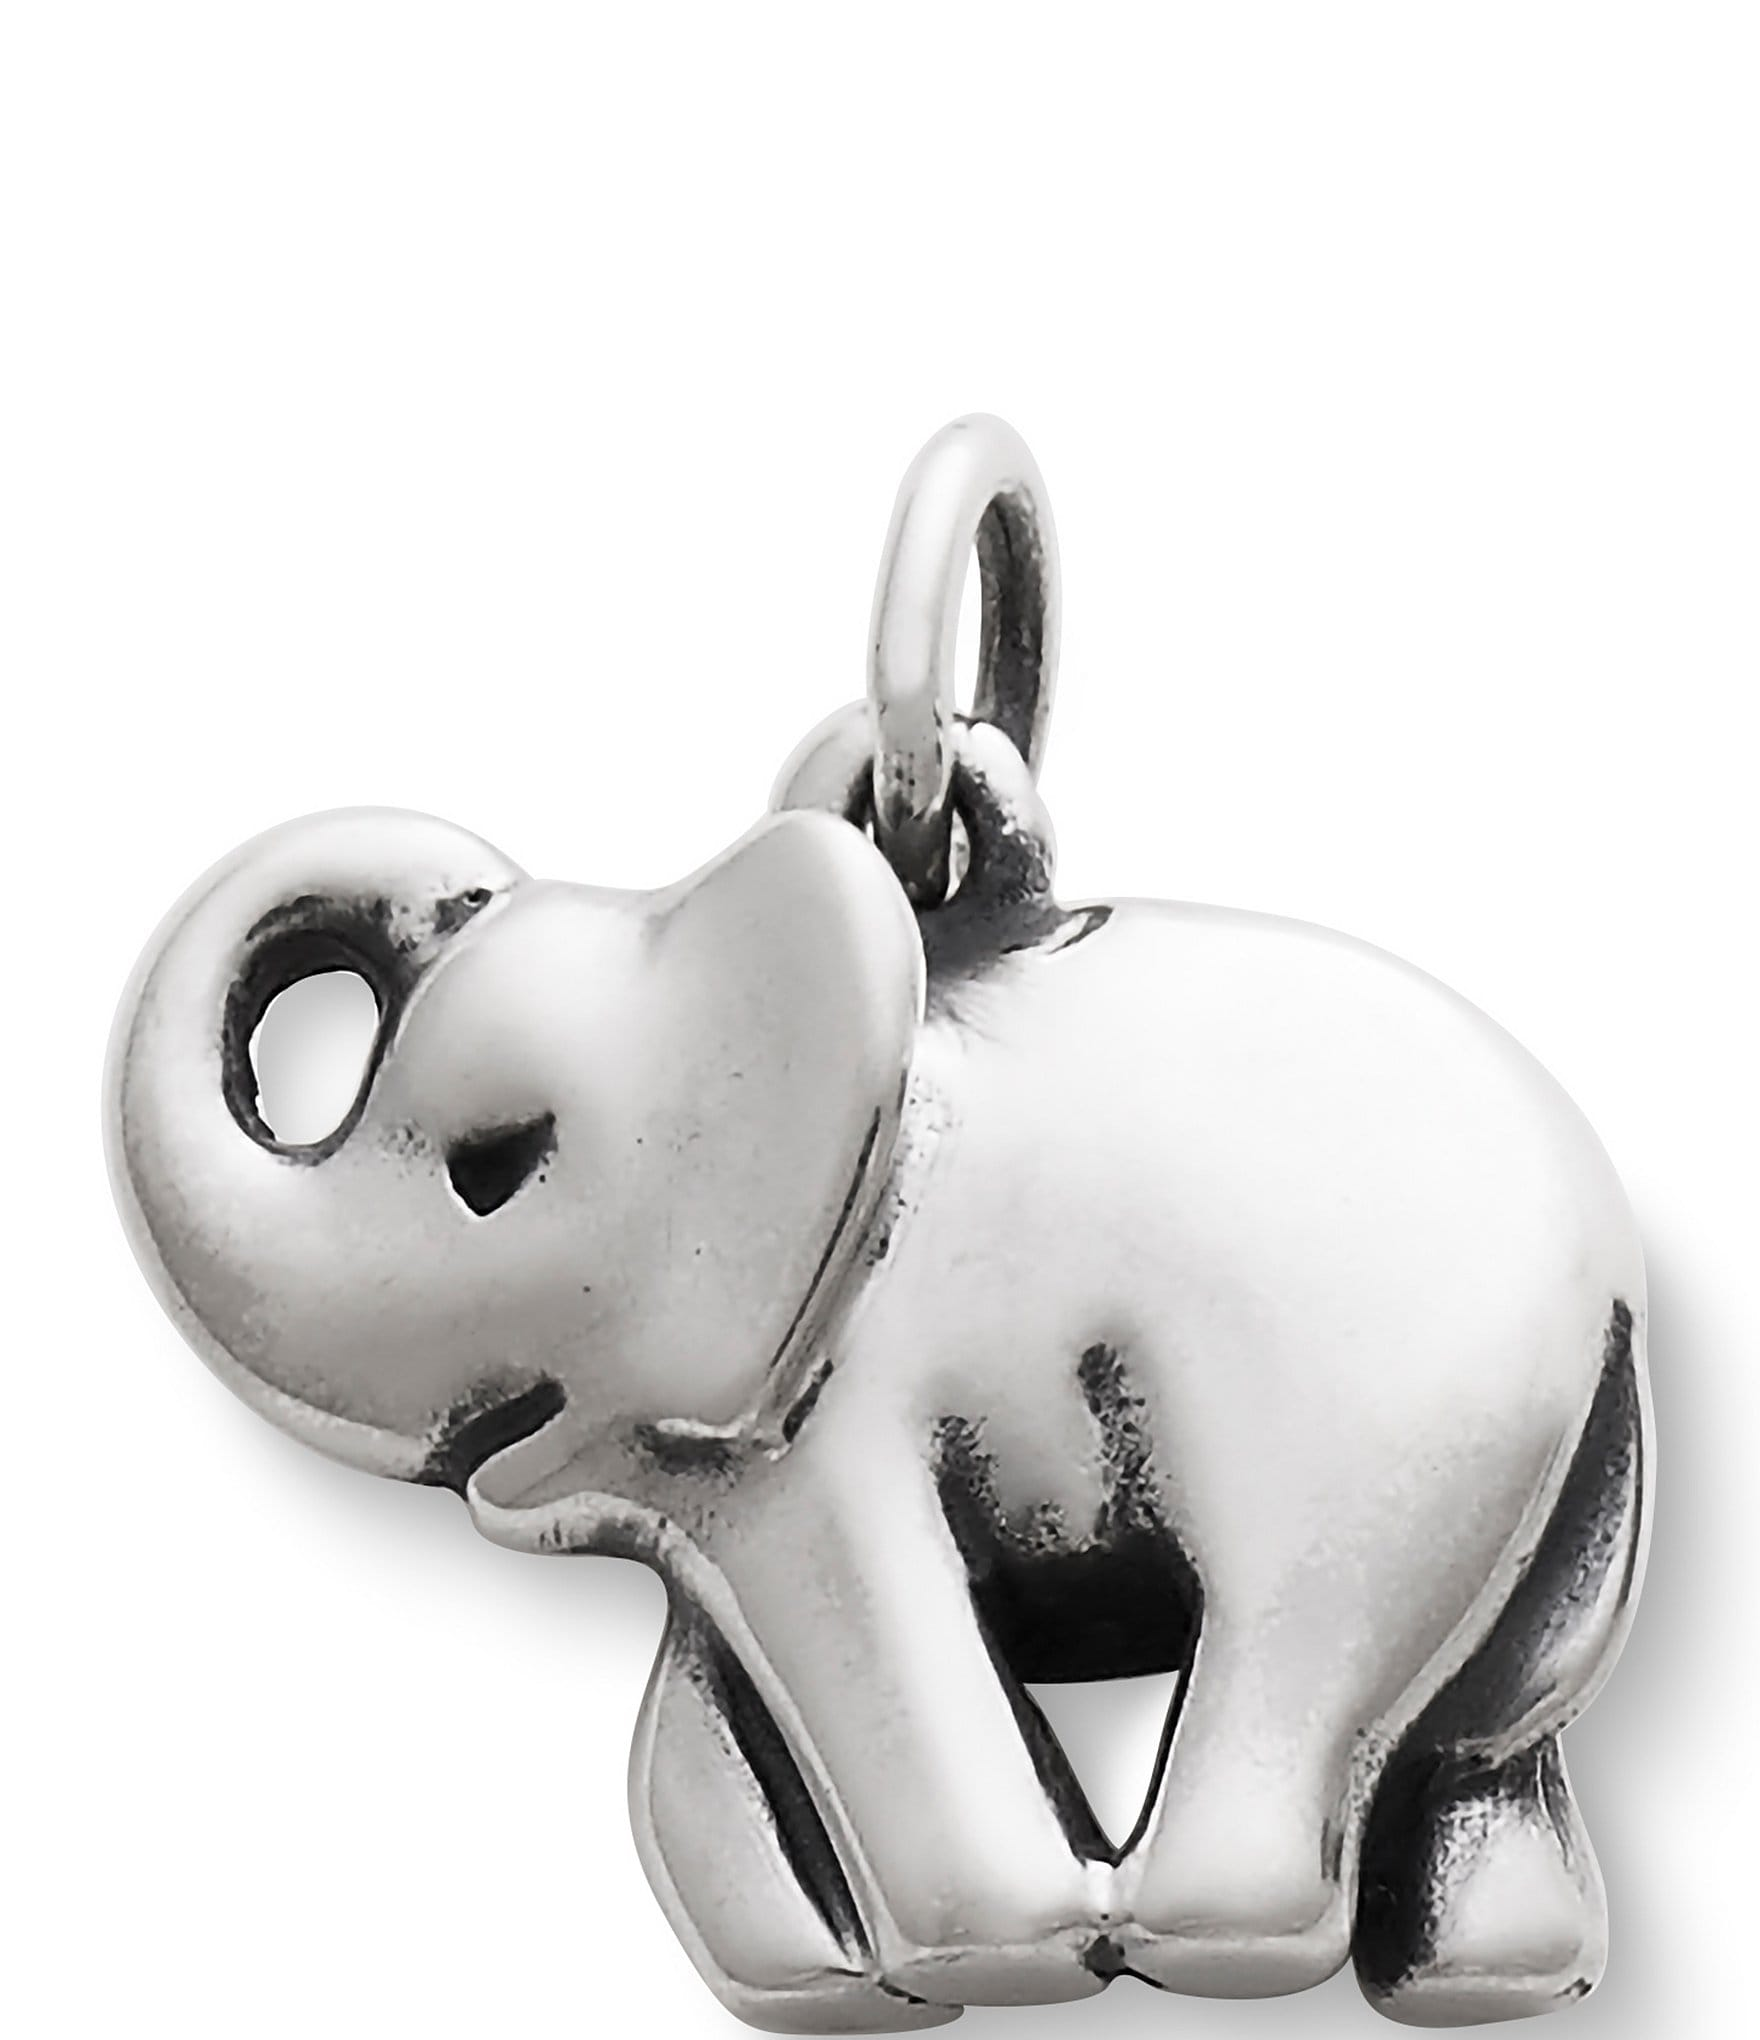 VERY NICE MODERN STERLING SILVER ELEPHANT BABY RATTLE